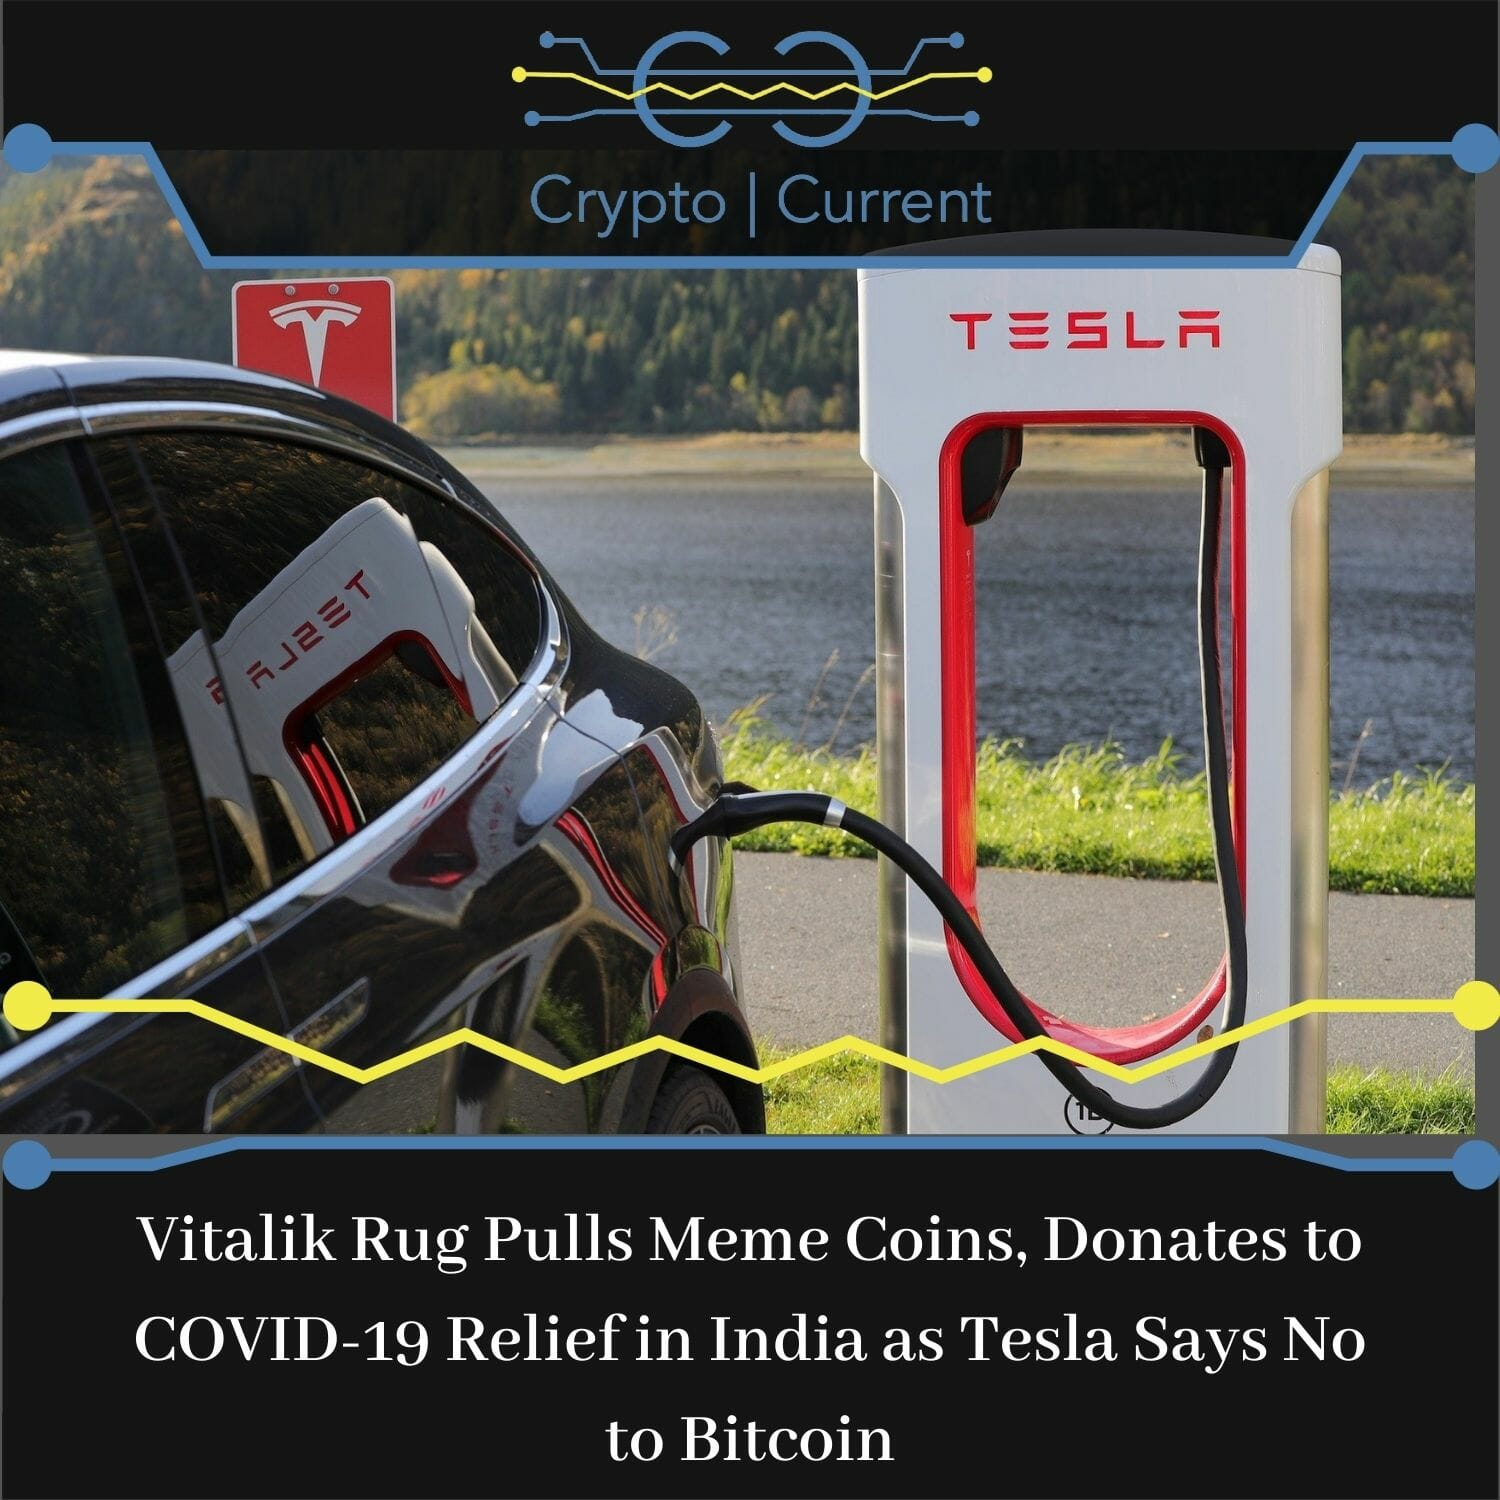 Vitalik Rug Pulls Meme Coins, Donates to COVID-19 Relief in India as Tesla Says No to Bitcoin